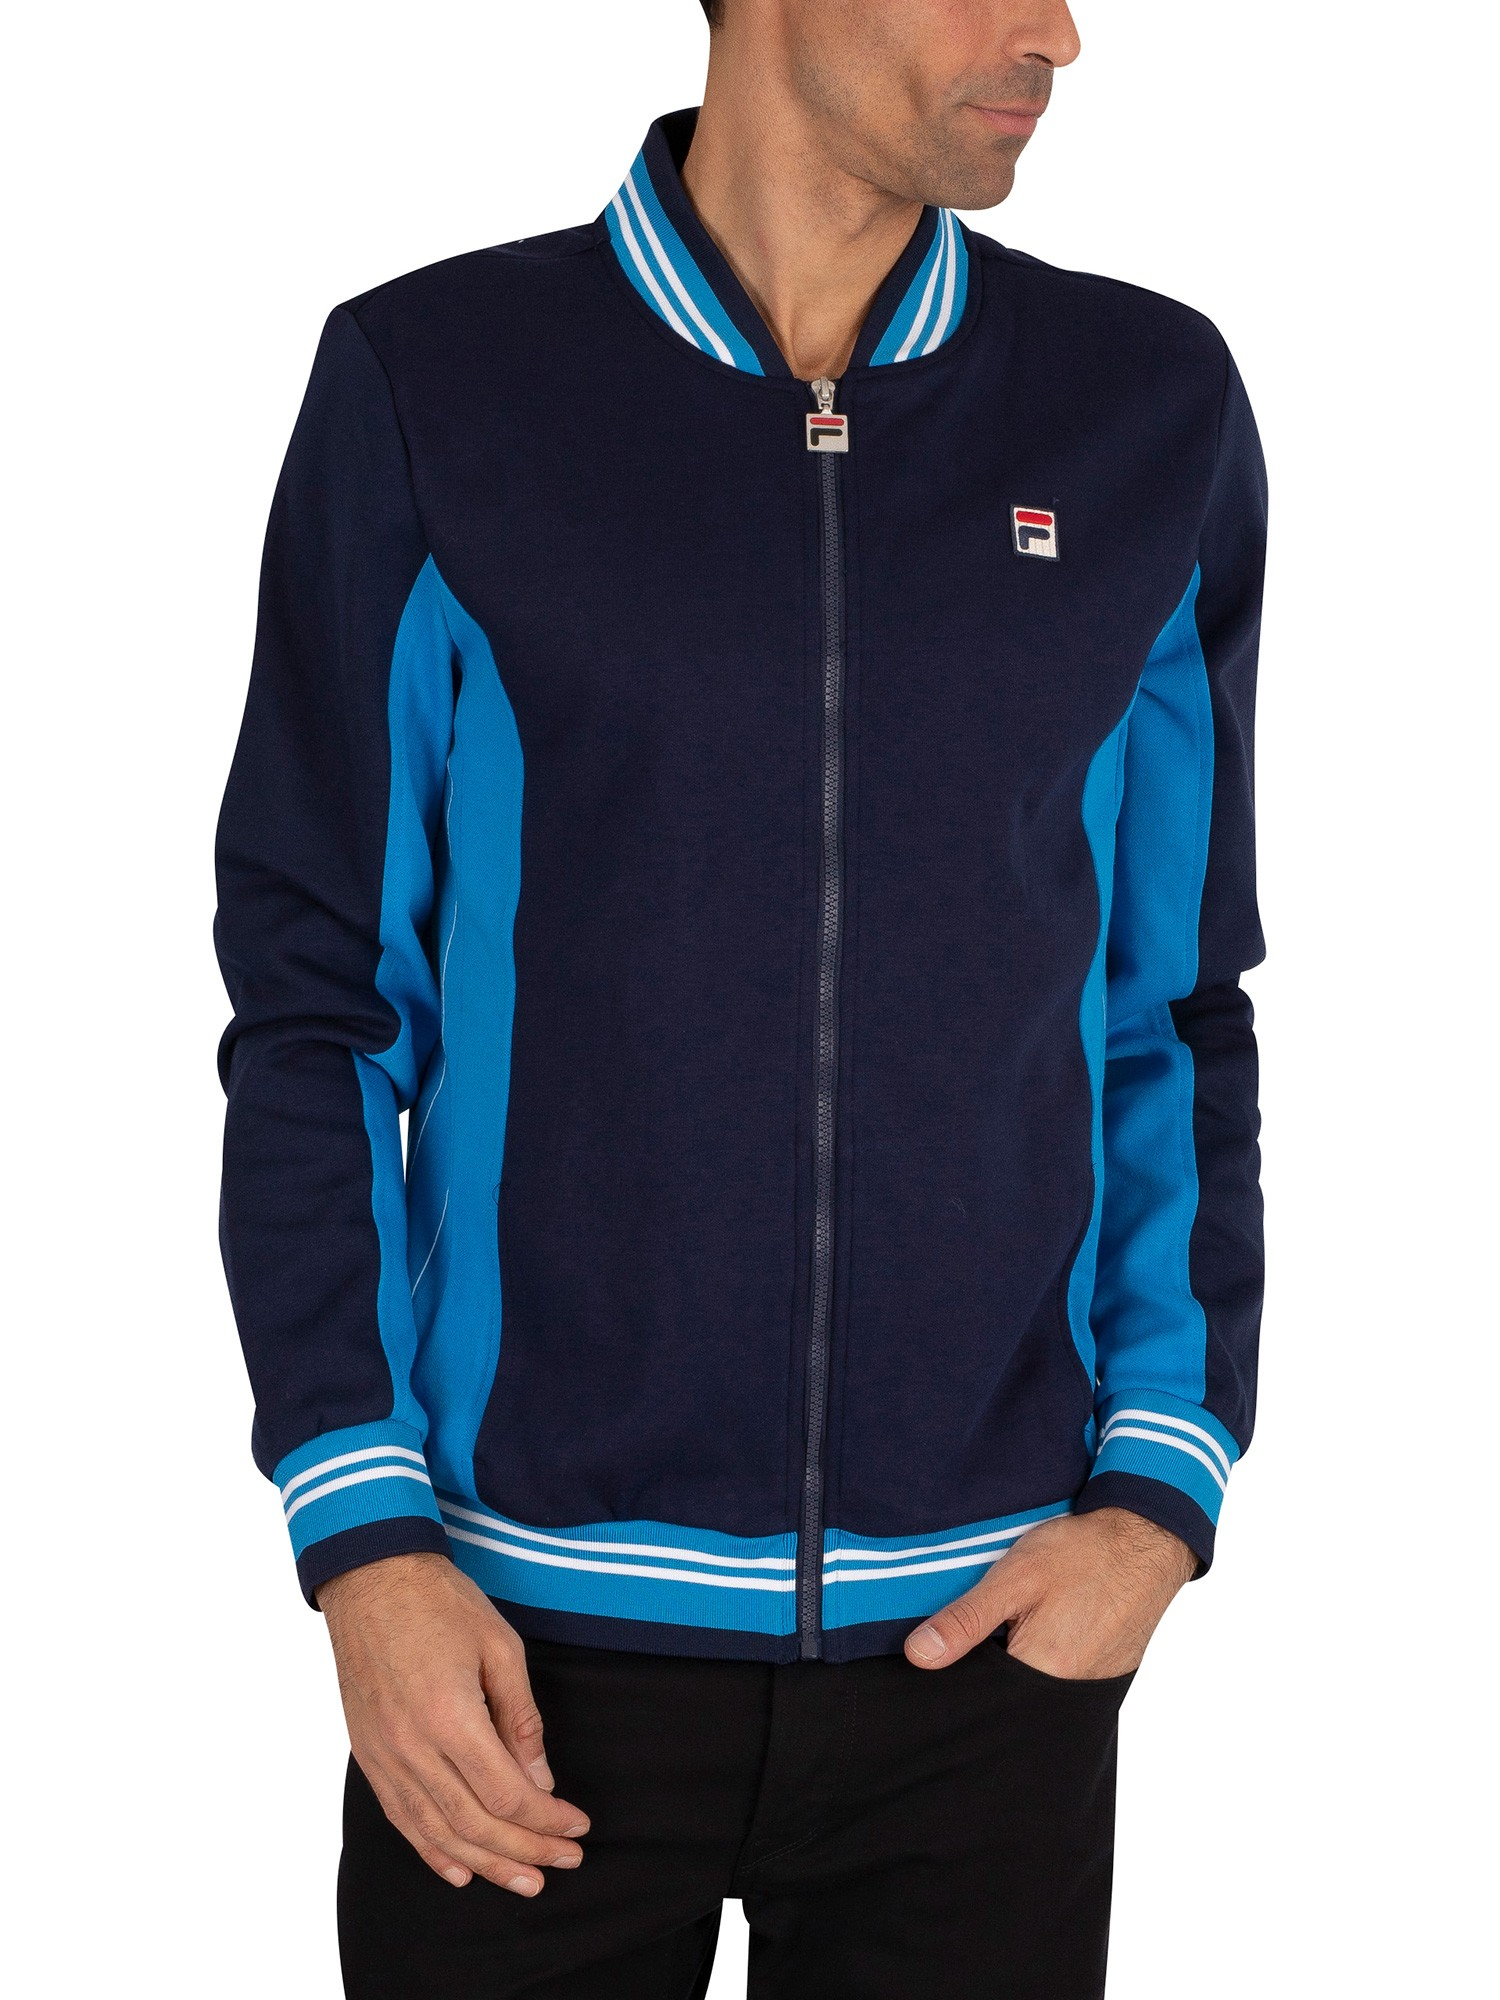 Fila Settanta Baseball Track Jacket - Peacoat/Blue Aster/White